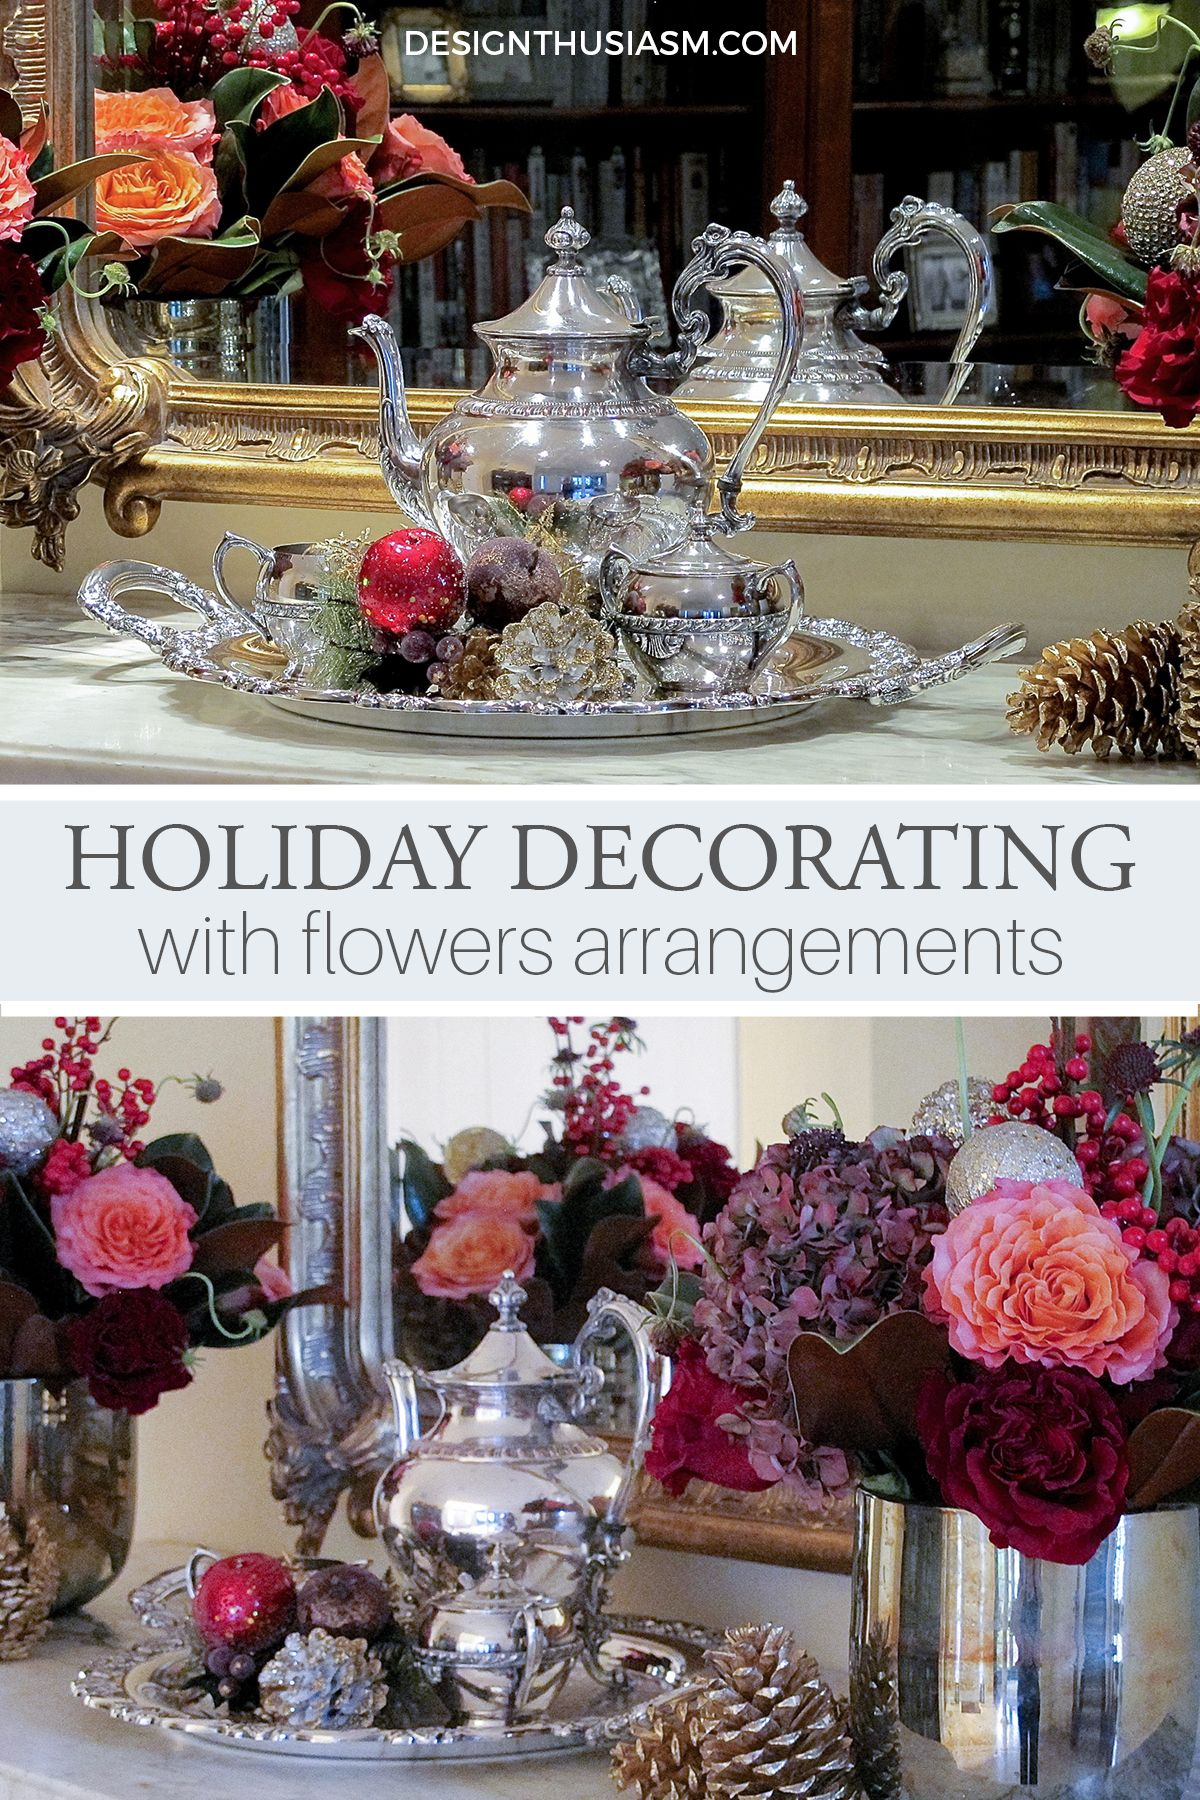 Not ready to pull out all of your holiday decor? Try easing into holiday decorating with Christmas flower arrangements and subtle seasonal baubles. -----> #christmasdecorideas #christmasdecorations #christmasdecorationideas #holidaydecorideas #holidaydecorations #holidaydecoratingideas #holidaydecoronabudget #frenchcountrychristmas #christmasflowerarrangements #designthusiasm